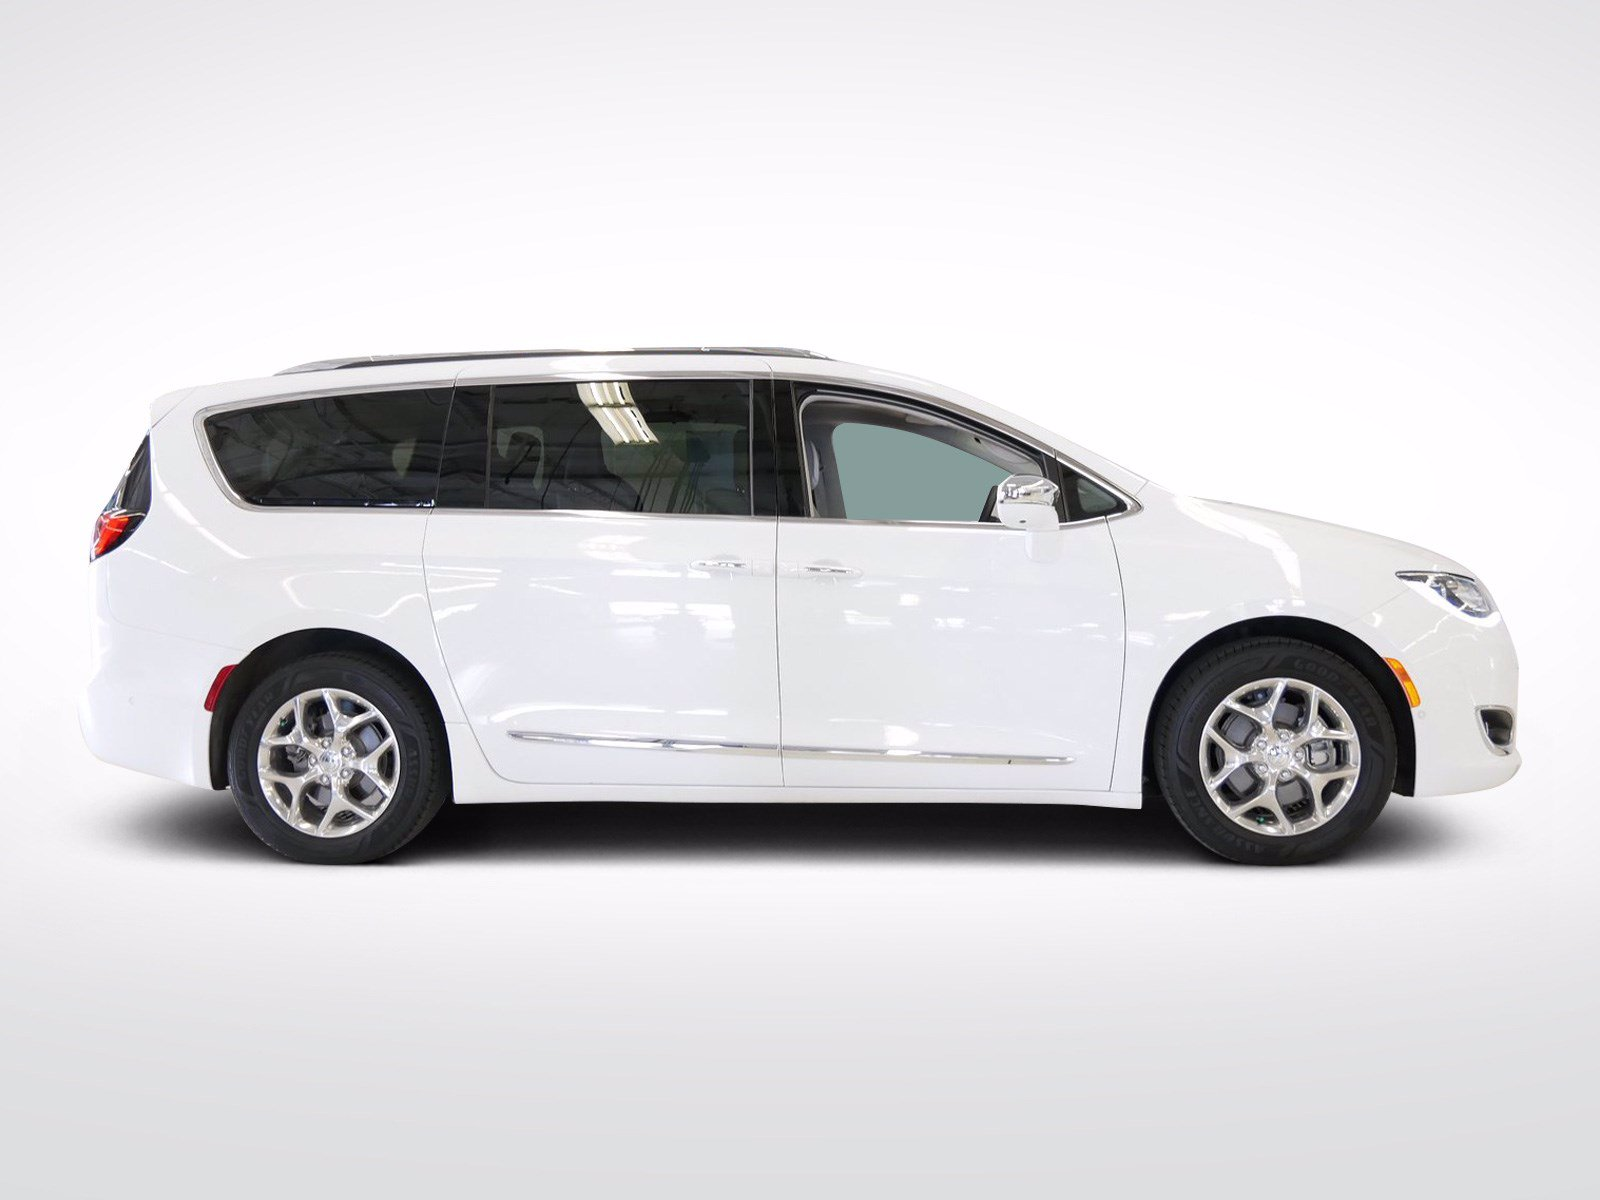 Used 2017 Chrysler Pacifica Limited with VIN 2C4RC1GG3HR531427 for sale in Willmar, Minnesota